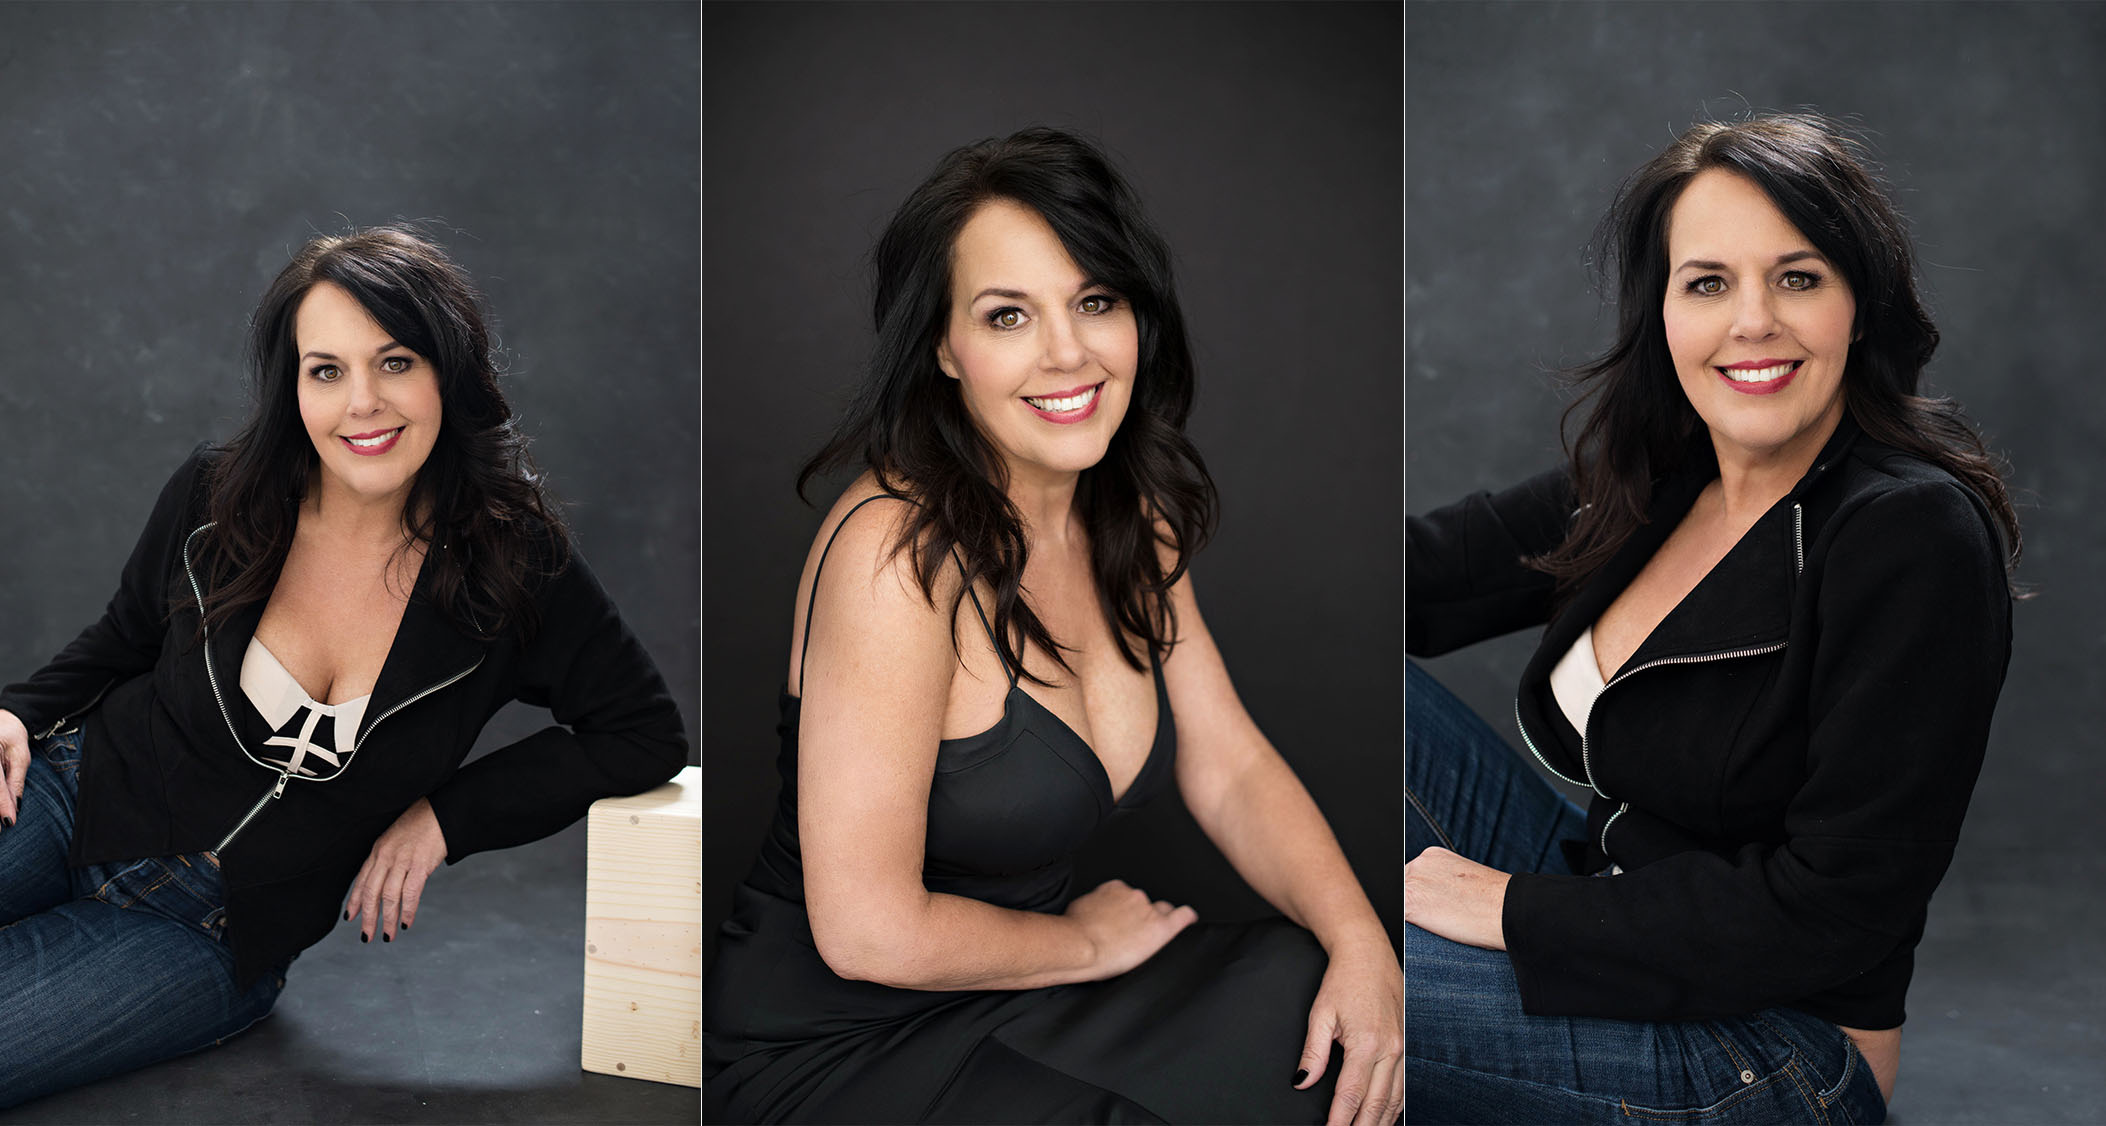 minneapolis-glamour-headshot-photography